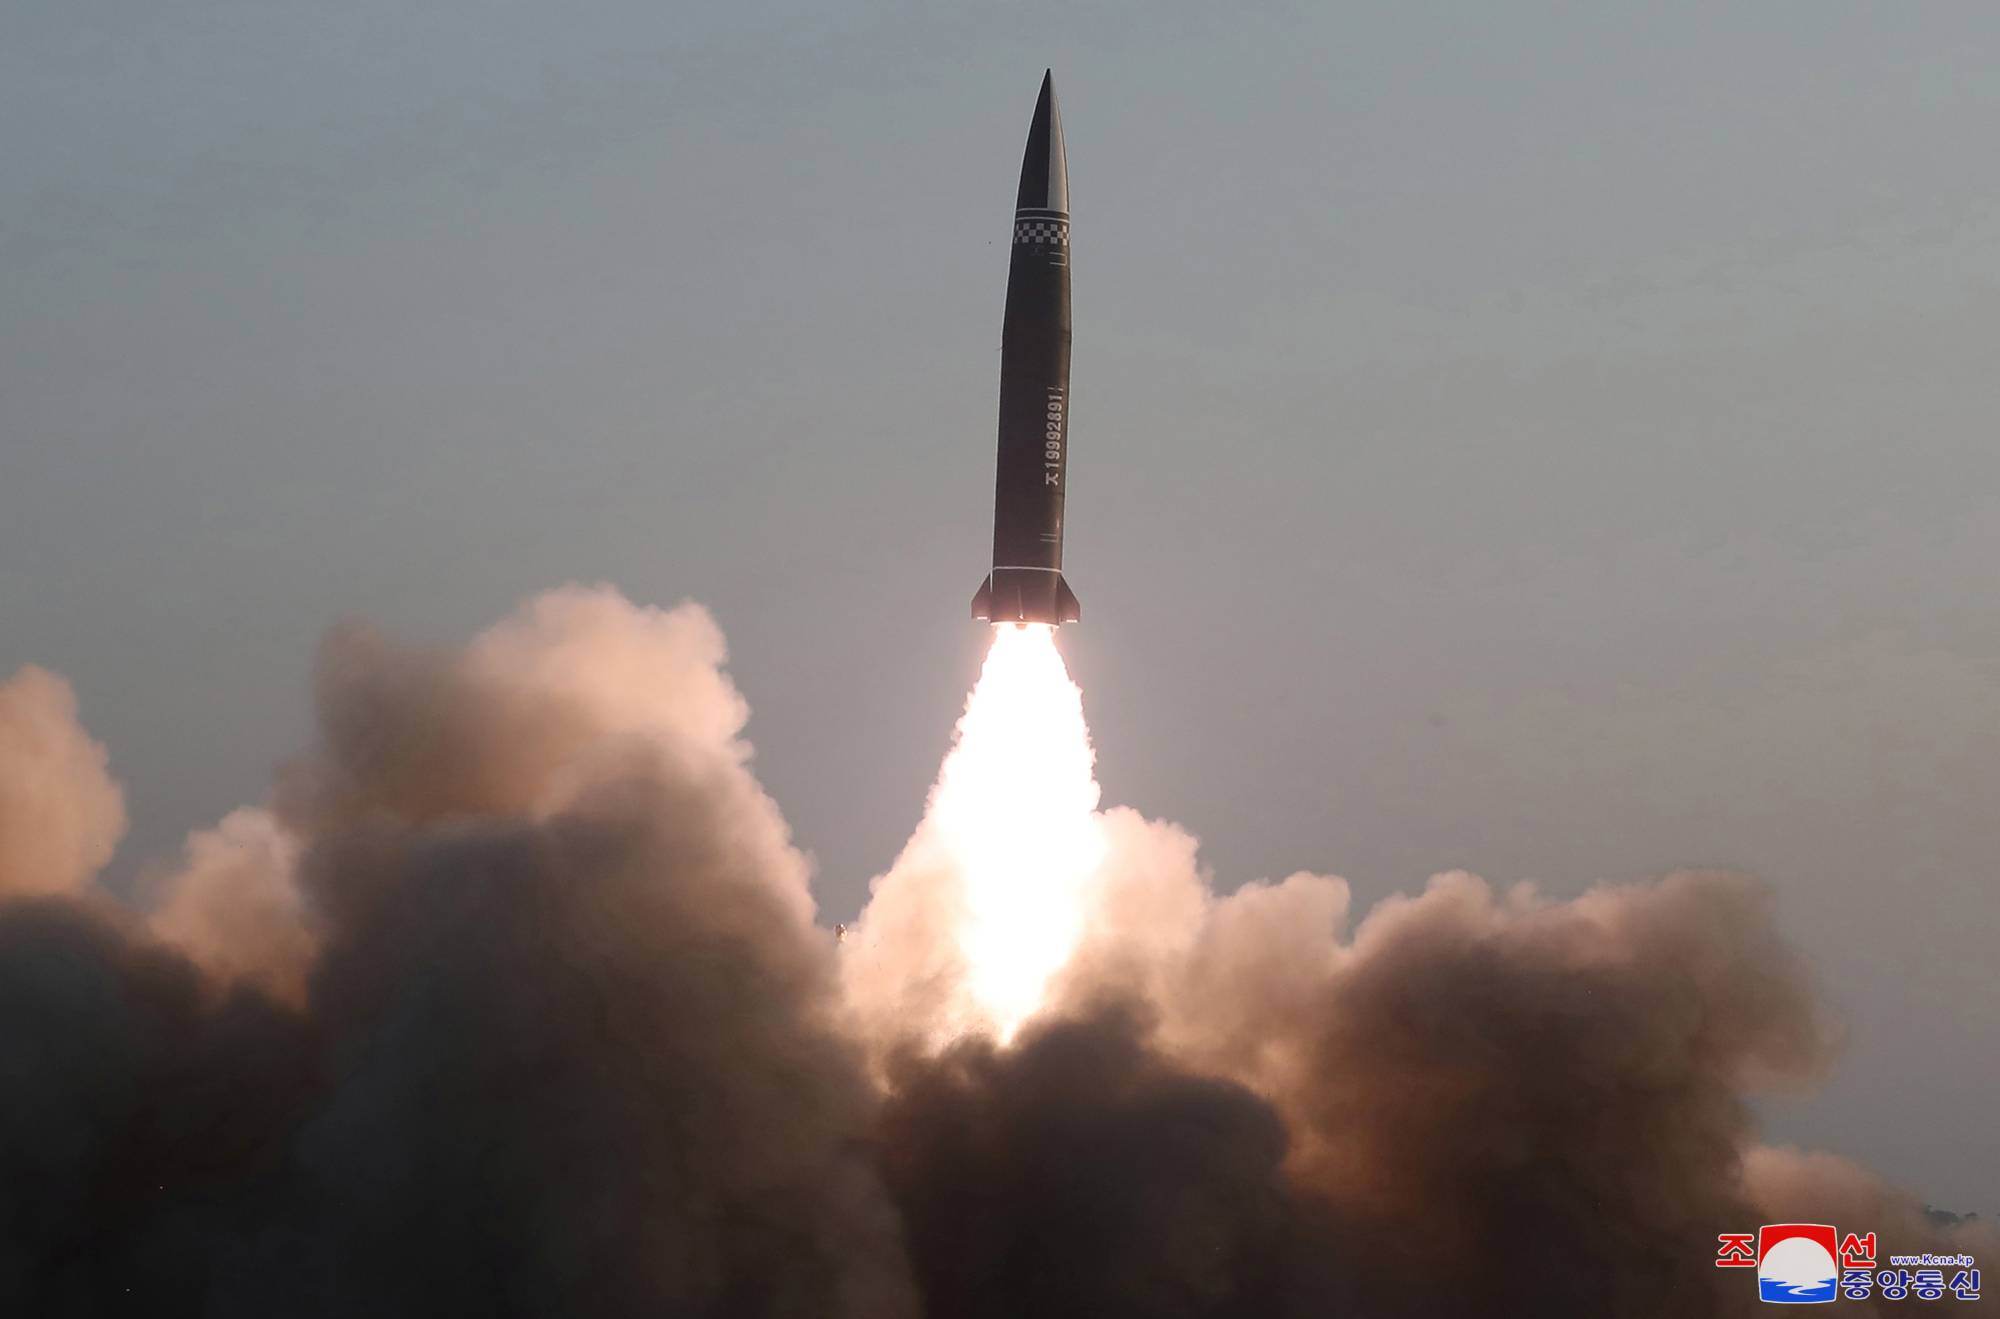 A possible situation involving North Korea, which reportedly launched a new type of tactical guided missile on Thursday, is one of the scenarios for which the SDF's potential deployment must be discussed. | KCNA / VIA REUTERS